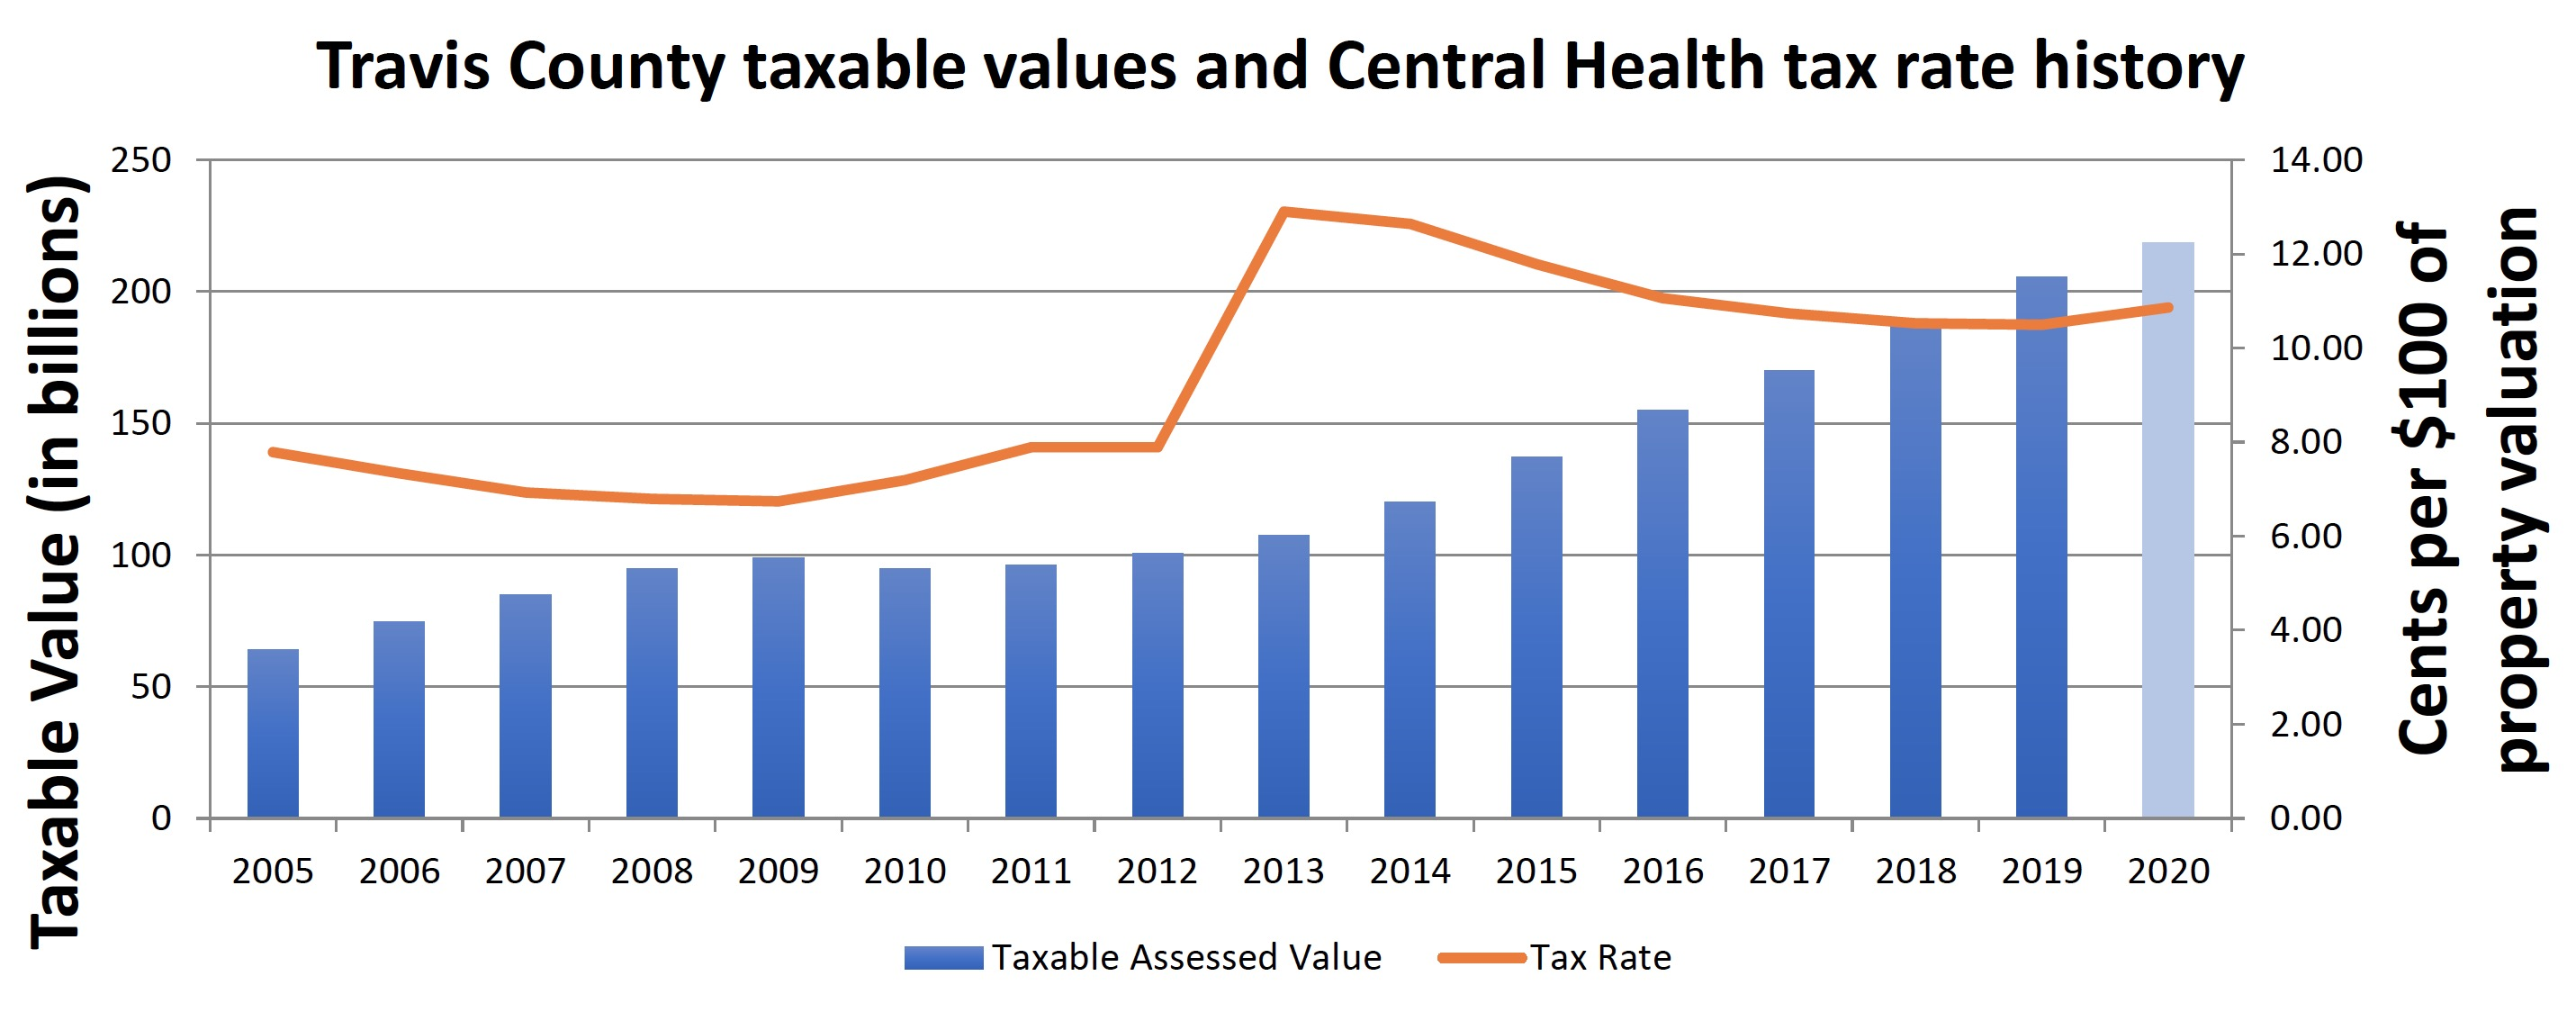 Taxable Values by Tax Year (in billions)